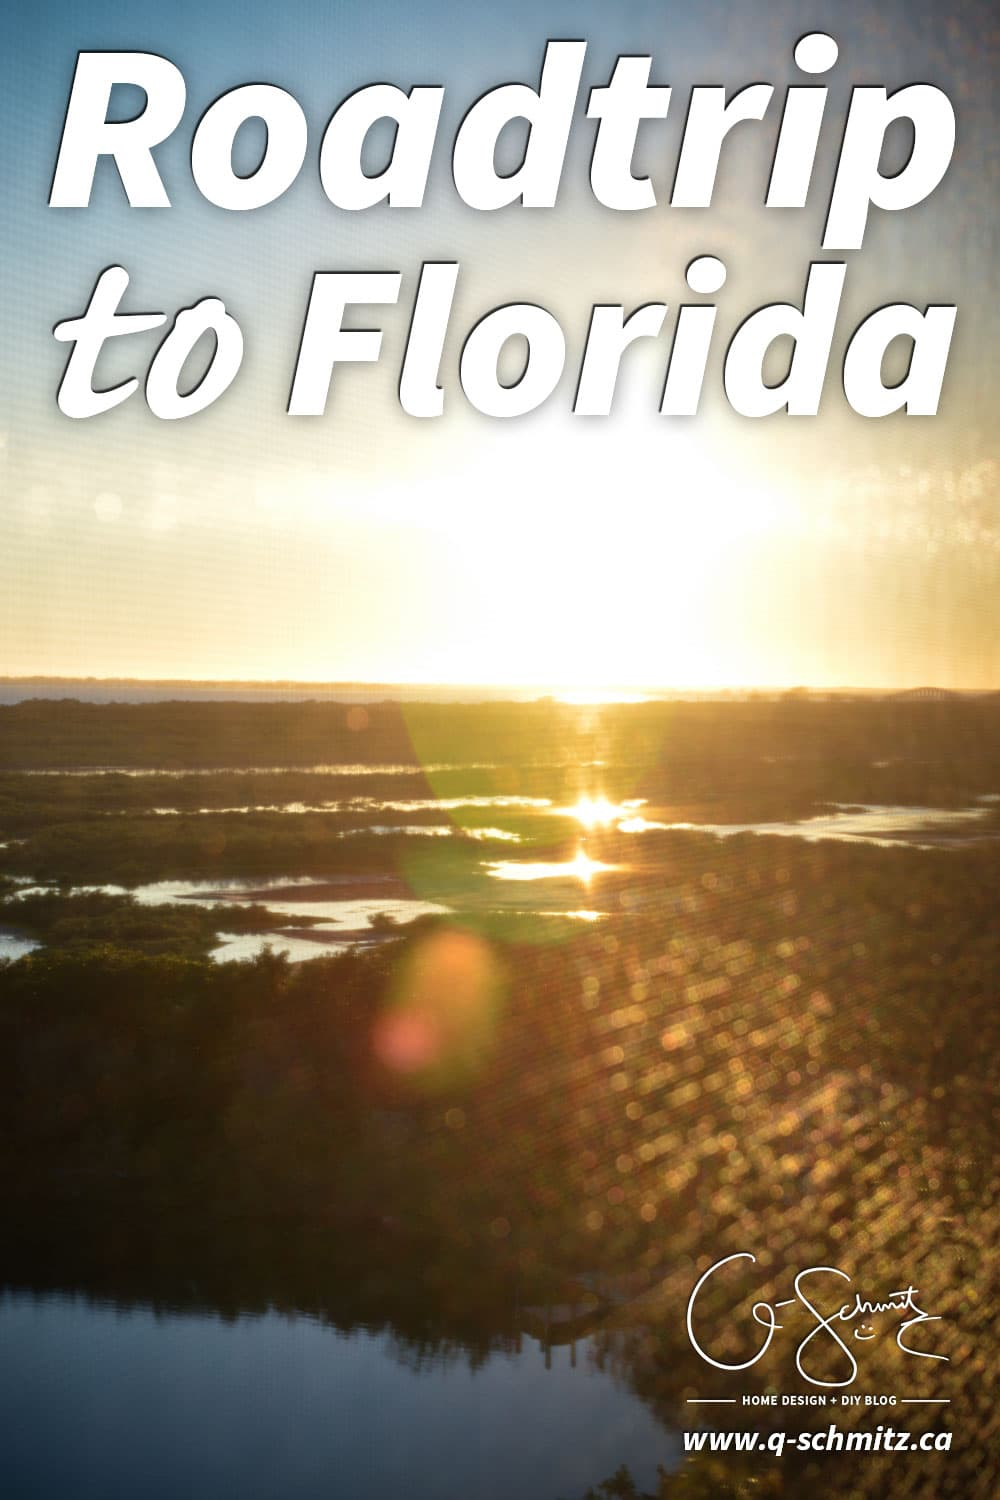 In February, we did a roadtrip to Florida; driving from Sudbury Ontario to Fort Myers. We stopped in different towns and restaurants along the way – check out our trip tips!